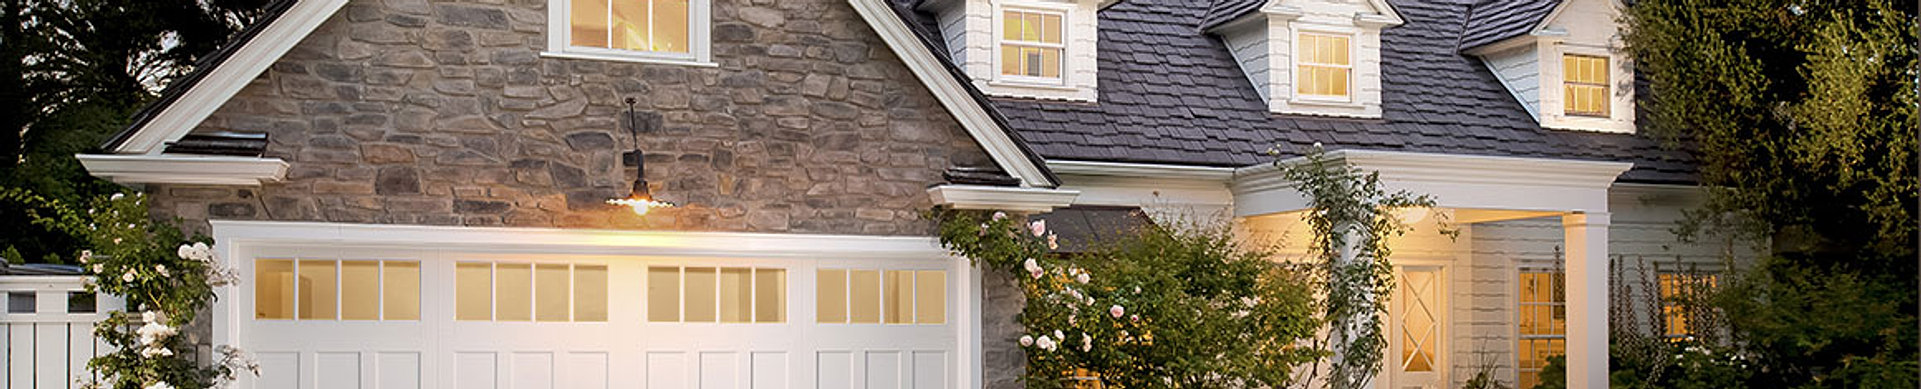 ᐅ Garage Door Repair Direct Service Llc Little Rock Ar